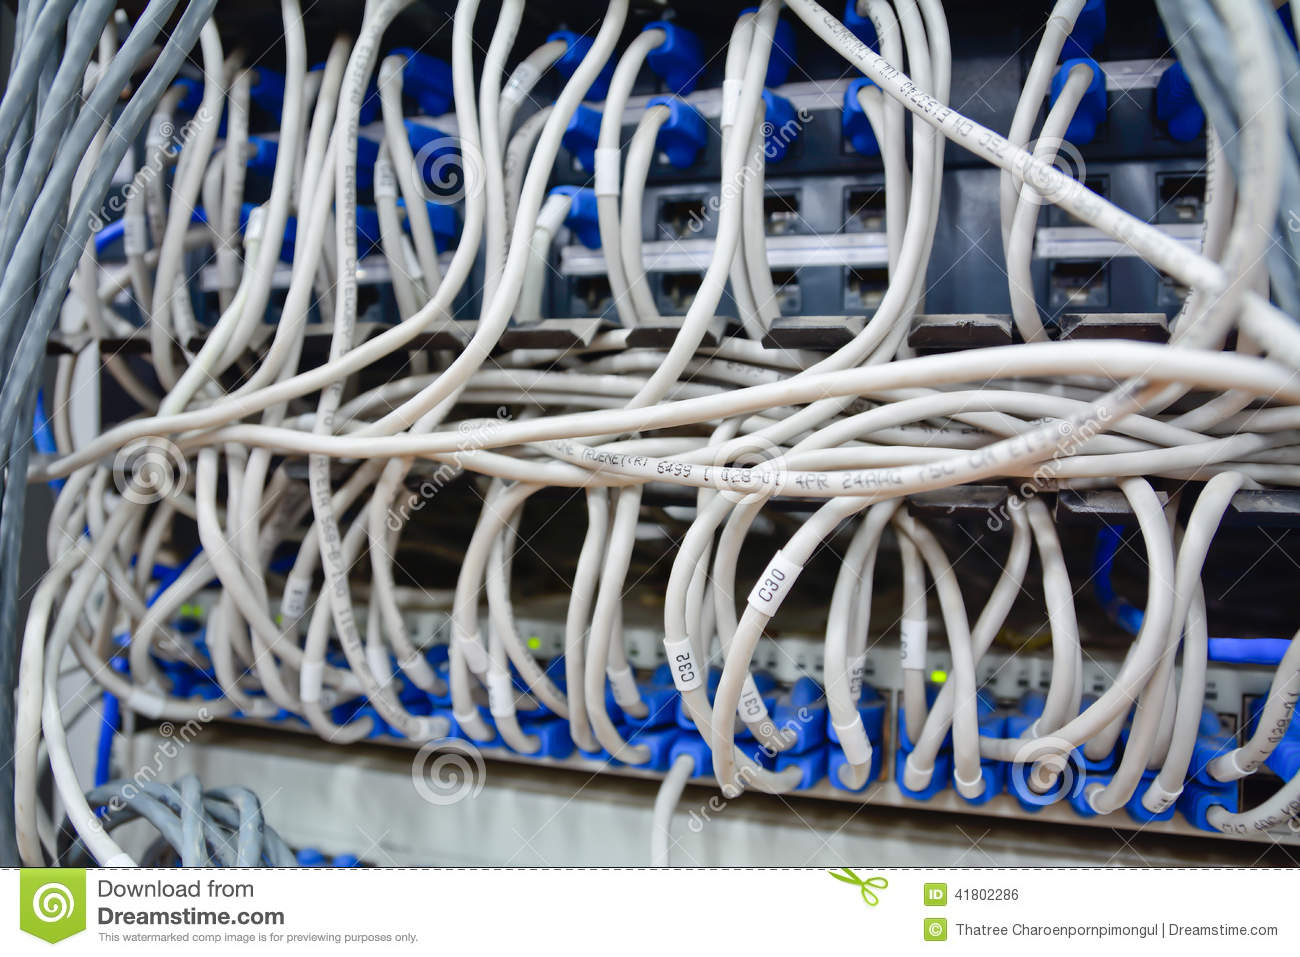 Ethernet Cables Connected To Computer Internet Server Stock Photo ...